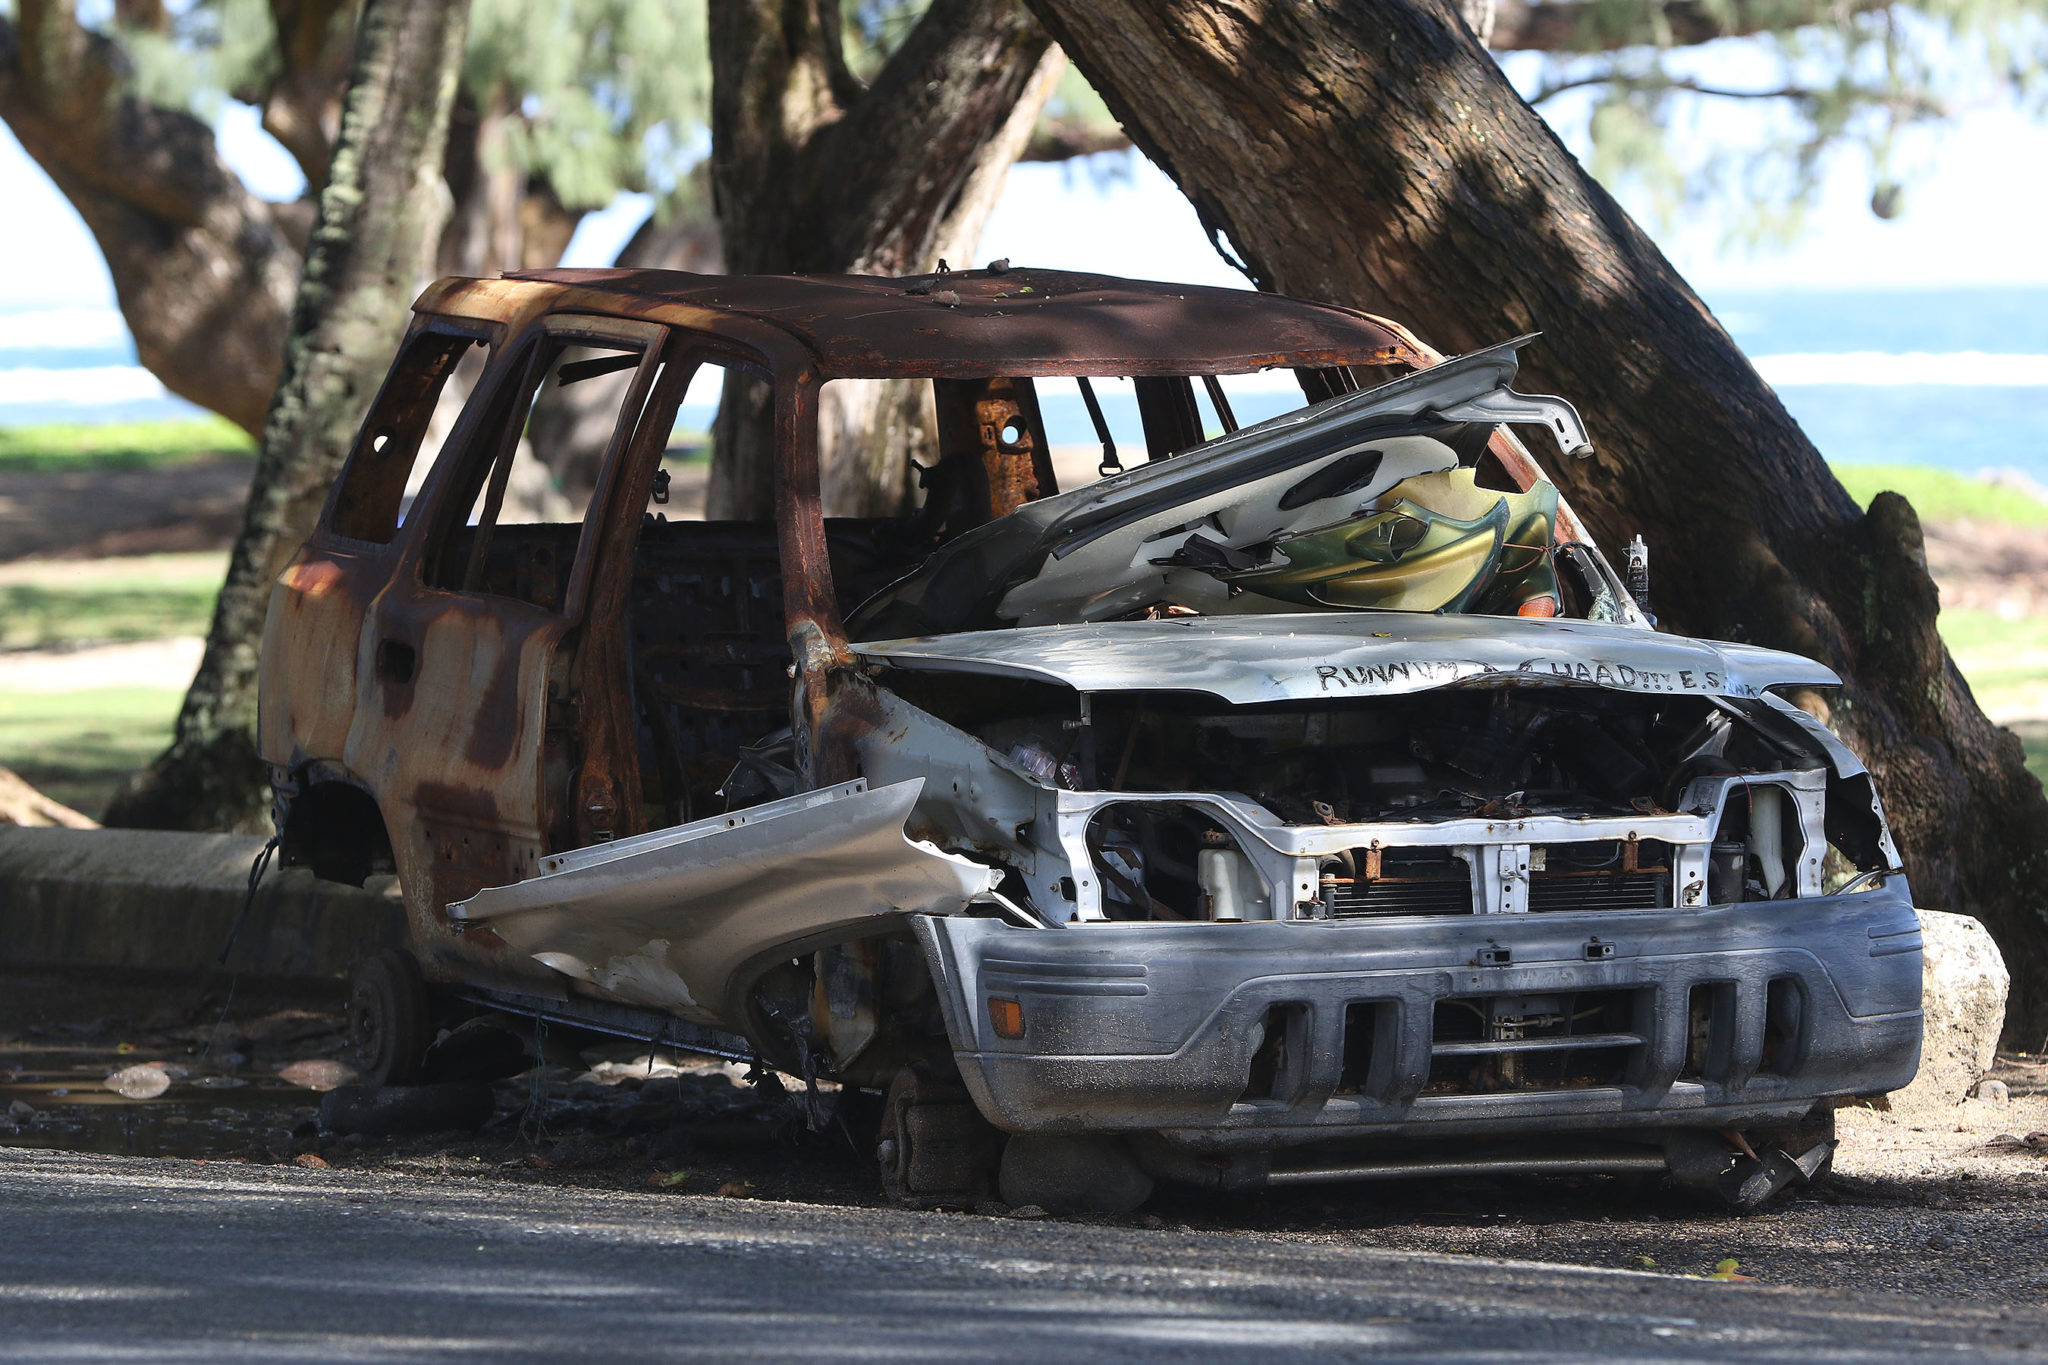 <p>Towing and recycling fees can cost salvage yards that take old cars like this more than they make from selling used parts and scrap metal.</p>